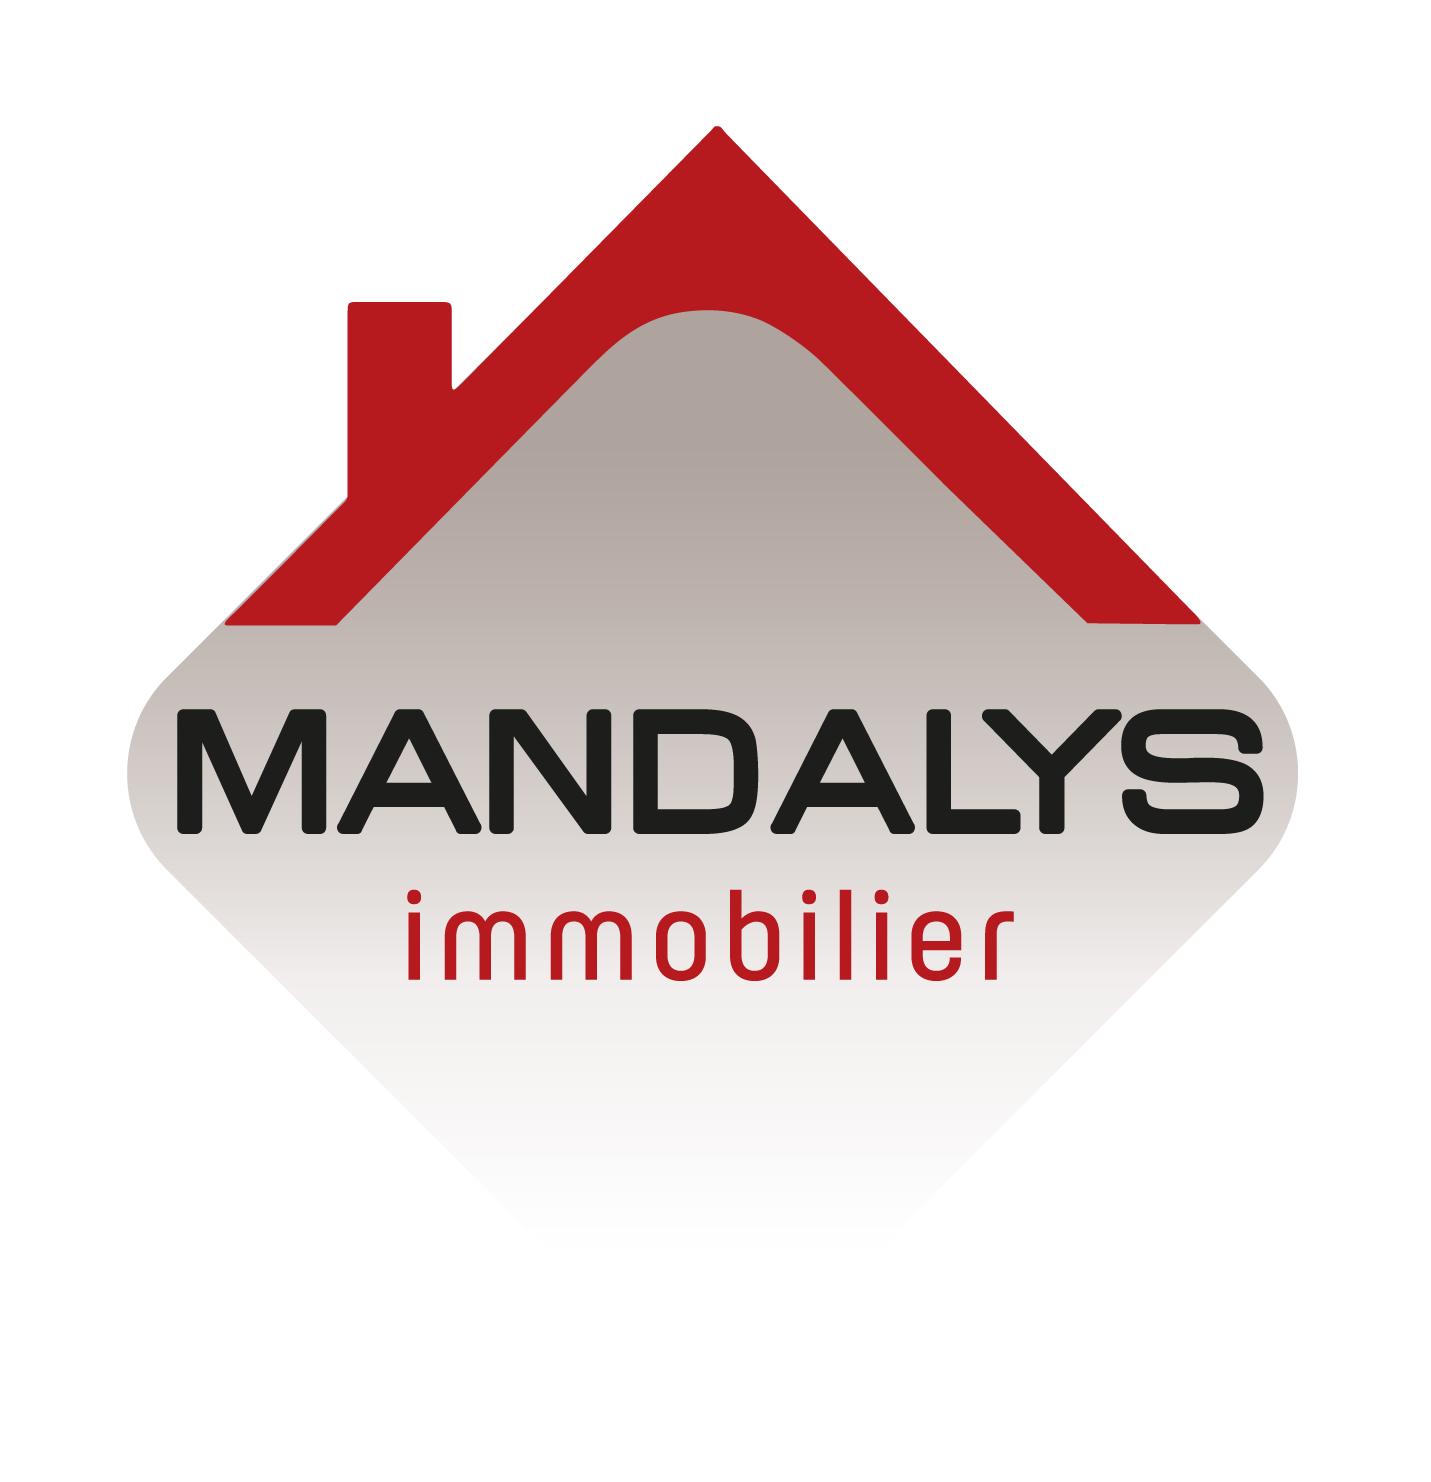 Mandalys Immobilier